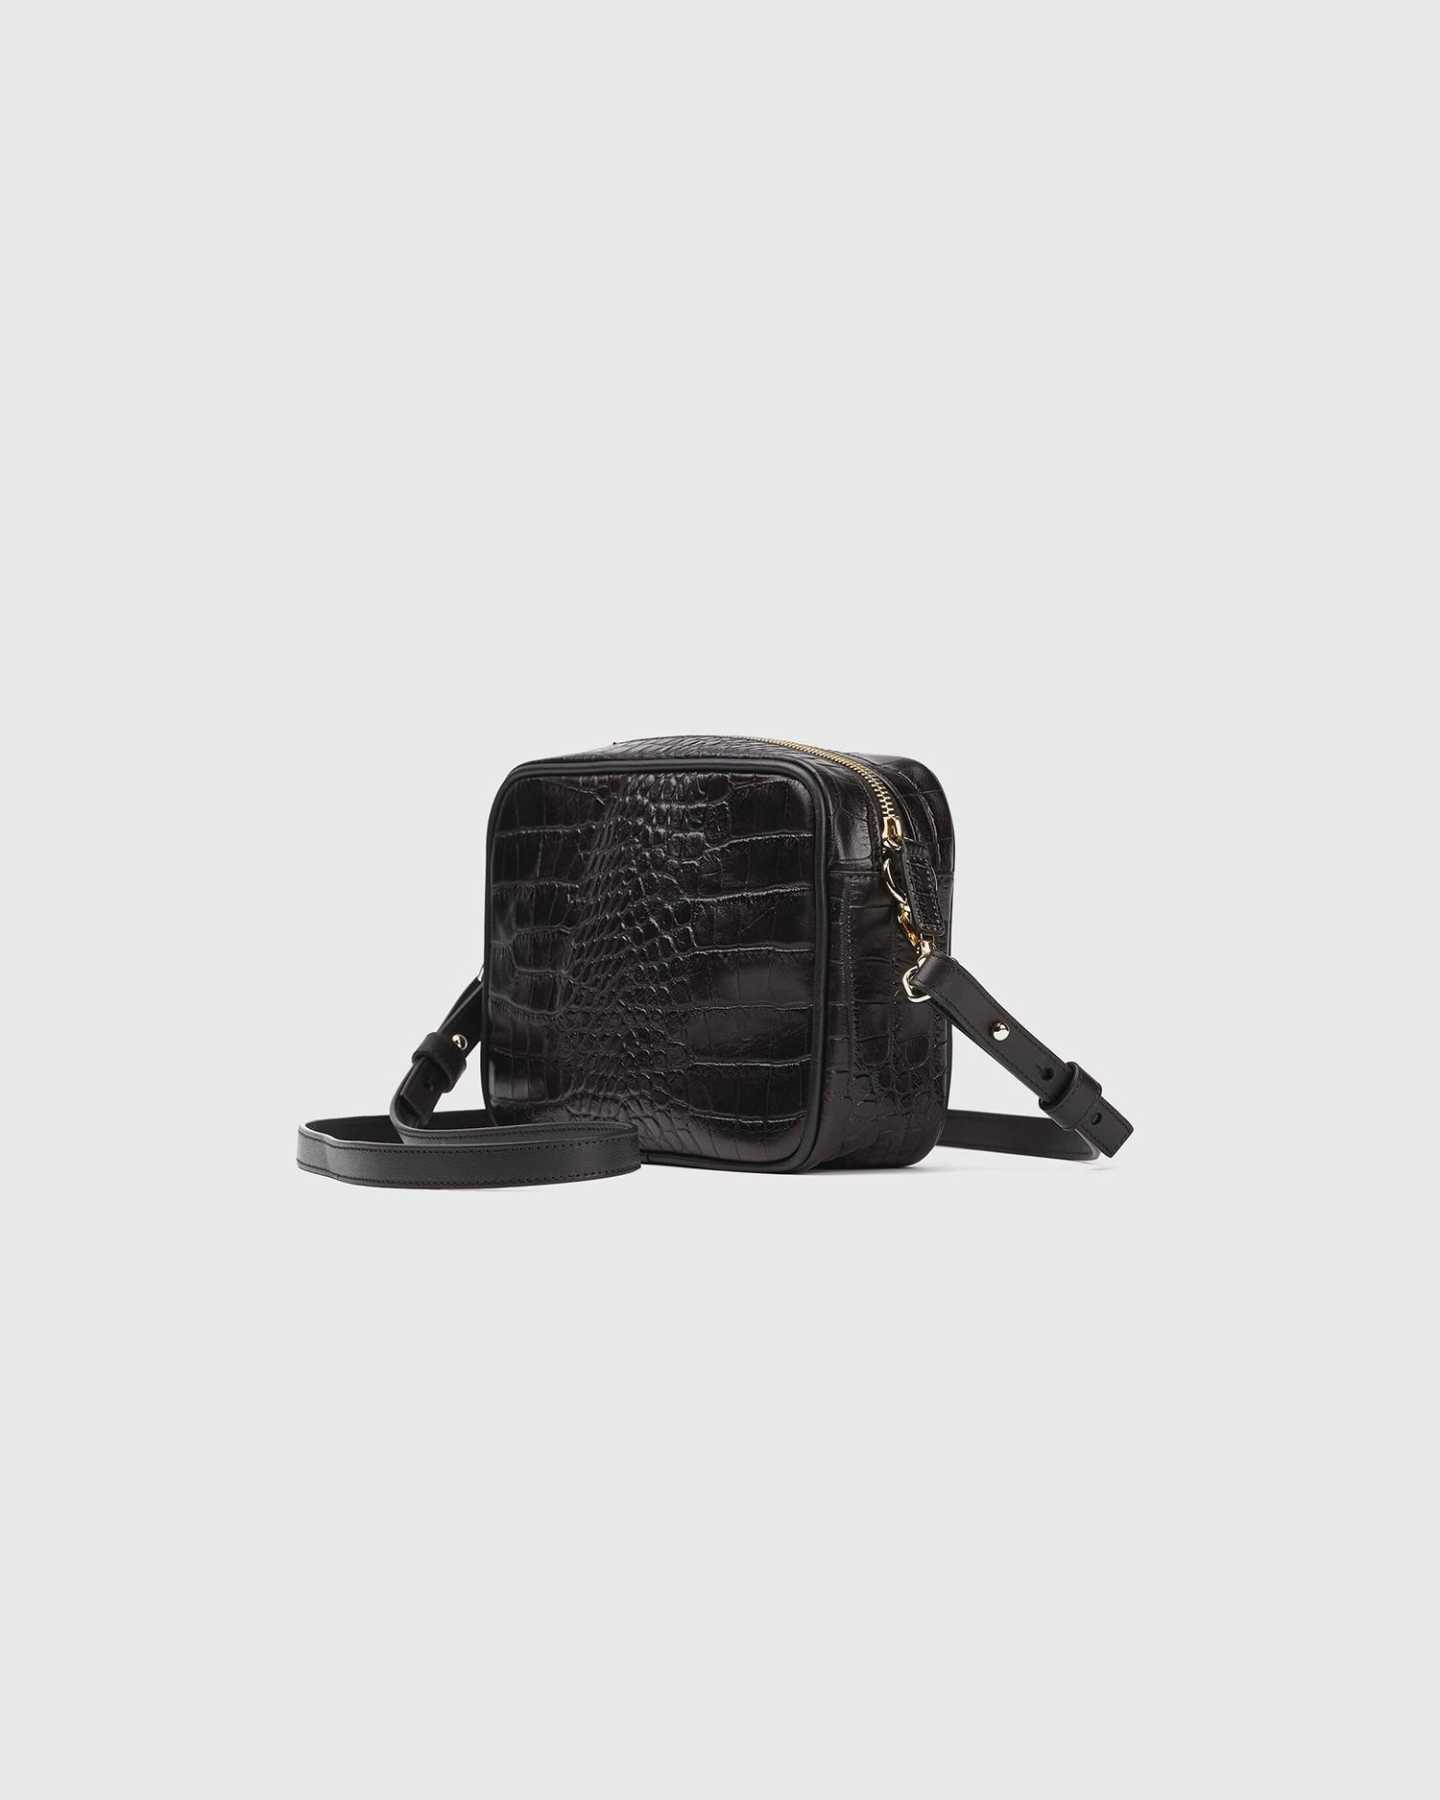 Leather crossbody bag with croco emboss design from angle